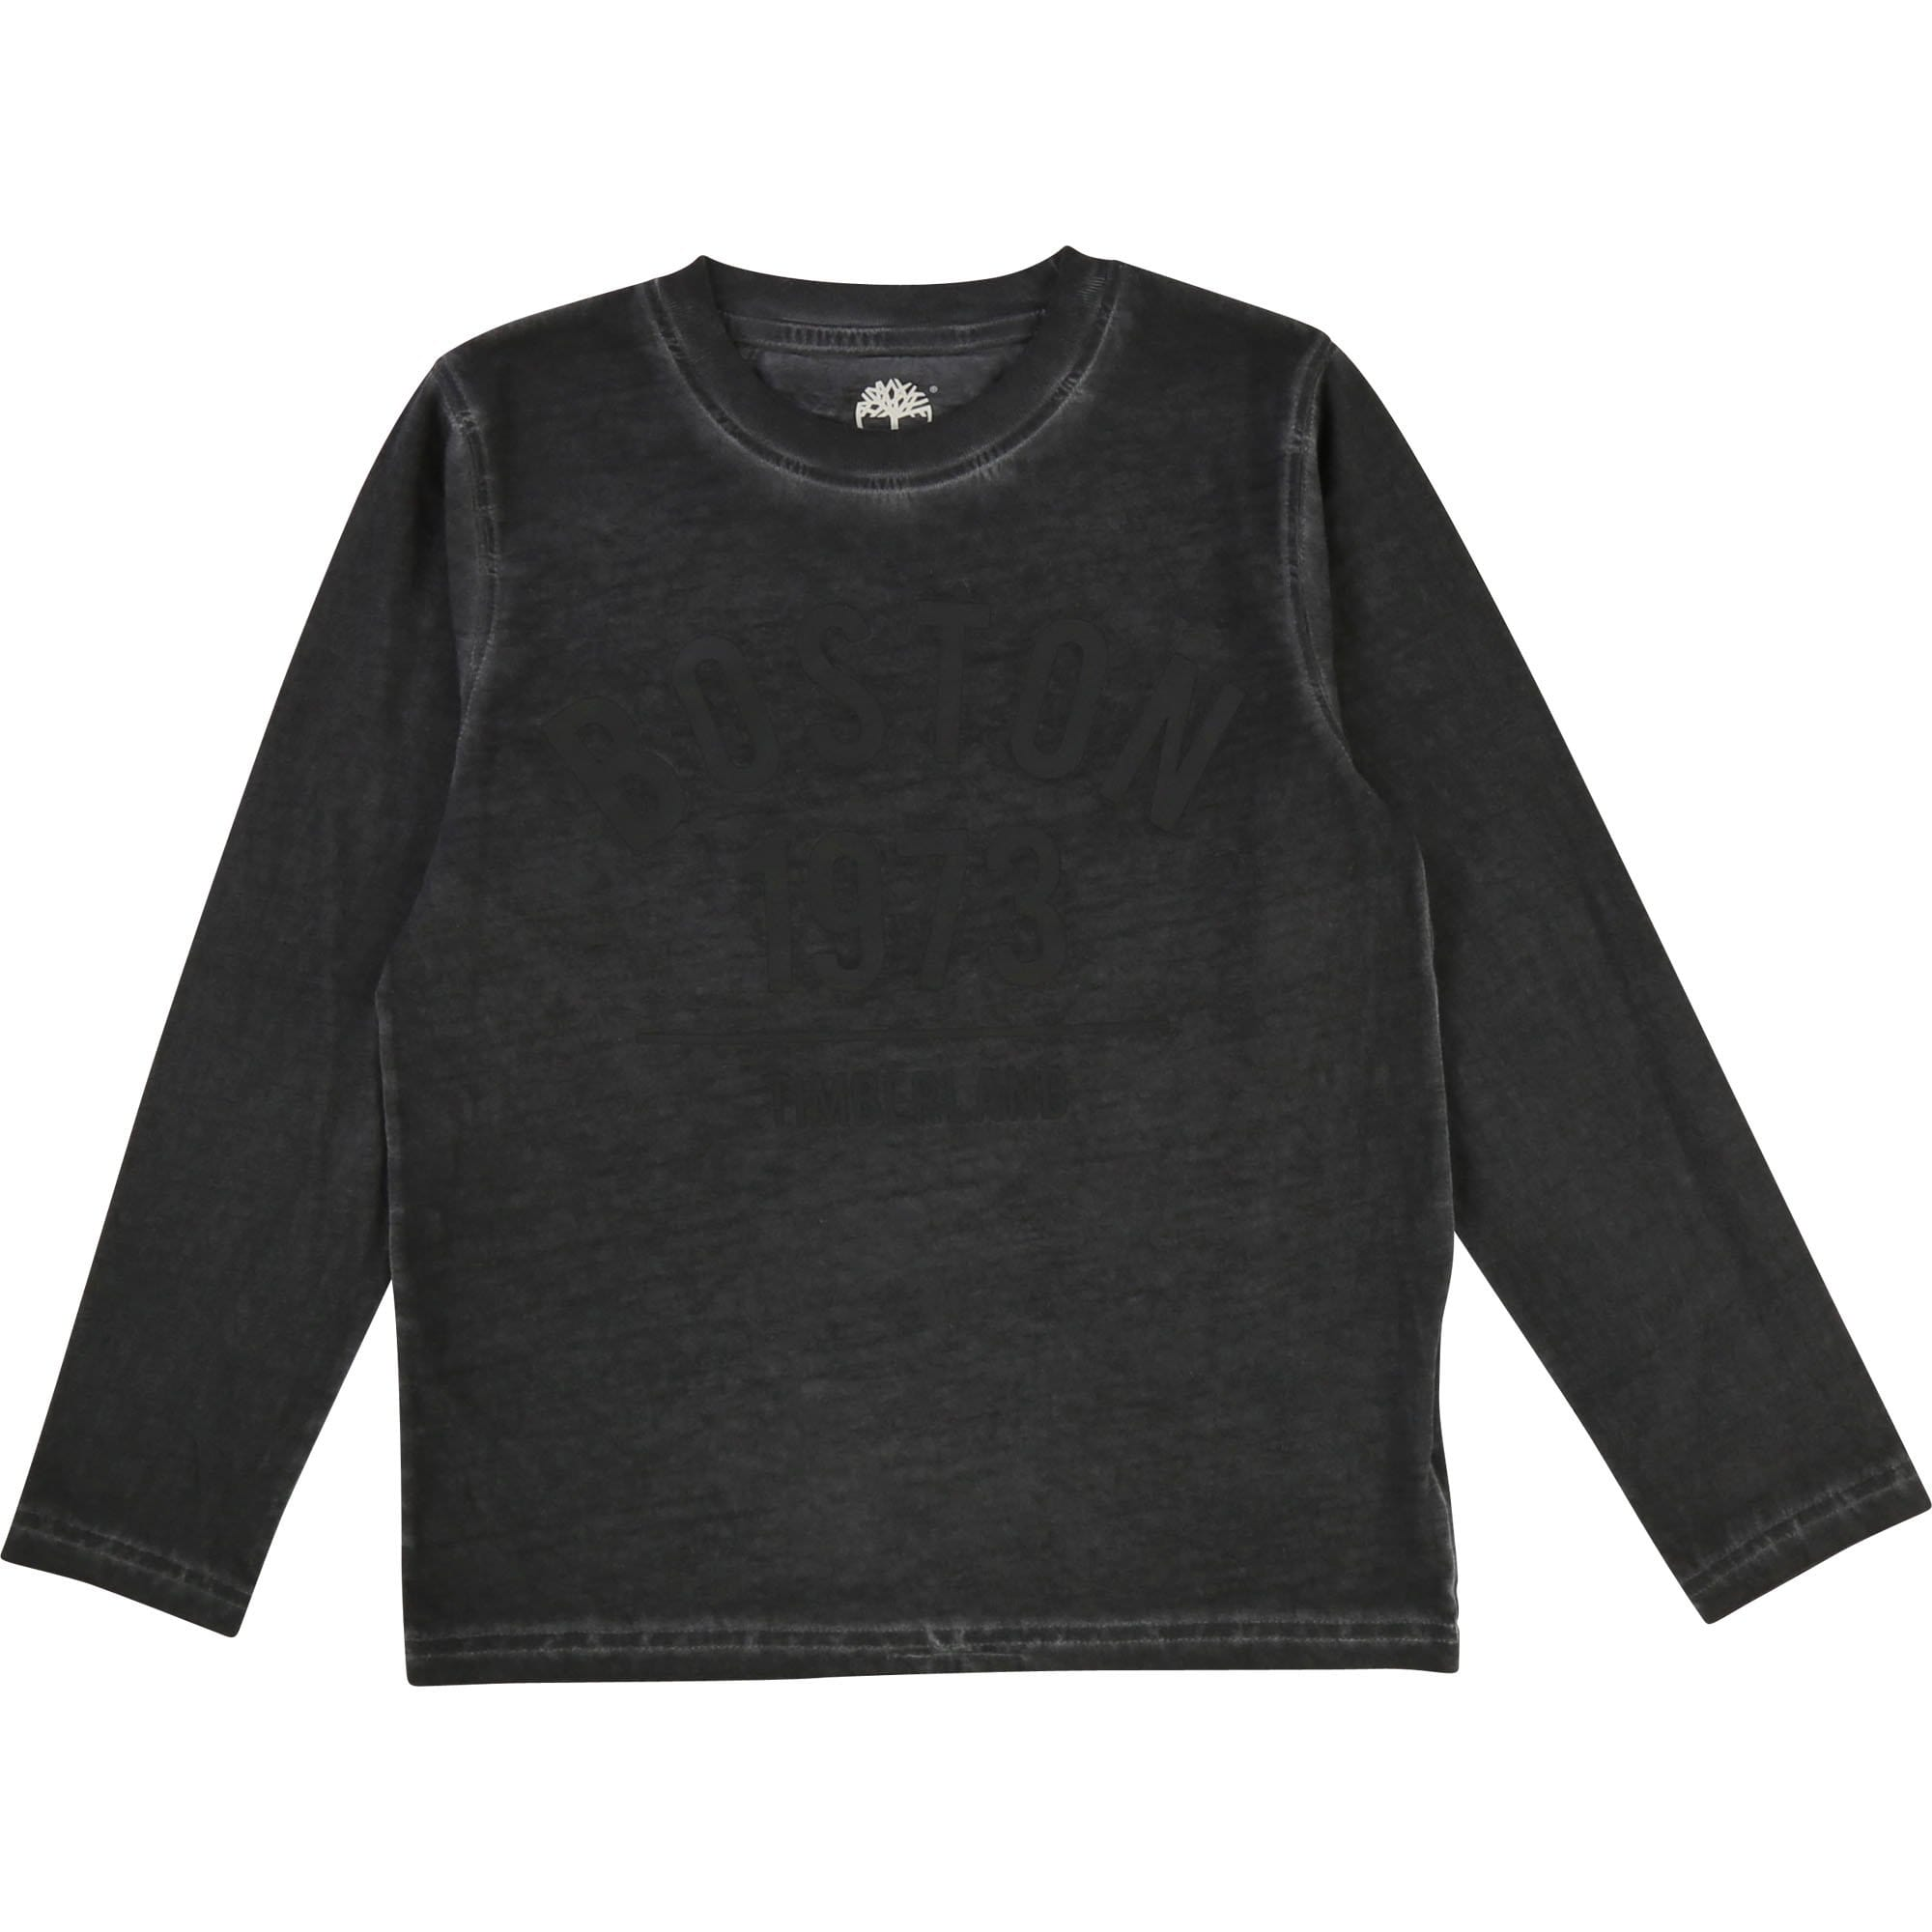 Timberland Long Sleeve T-Shirt (4717147127939)